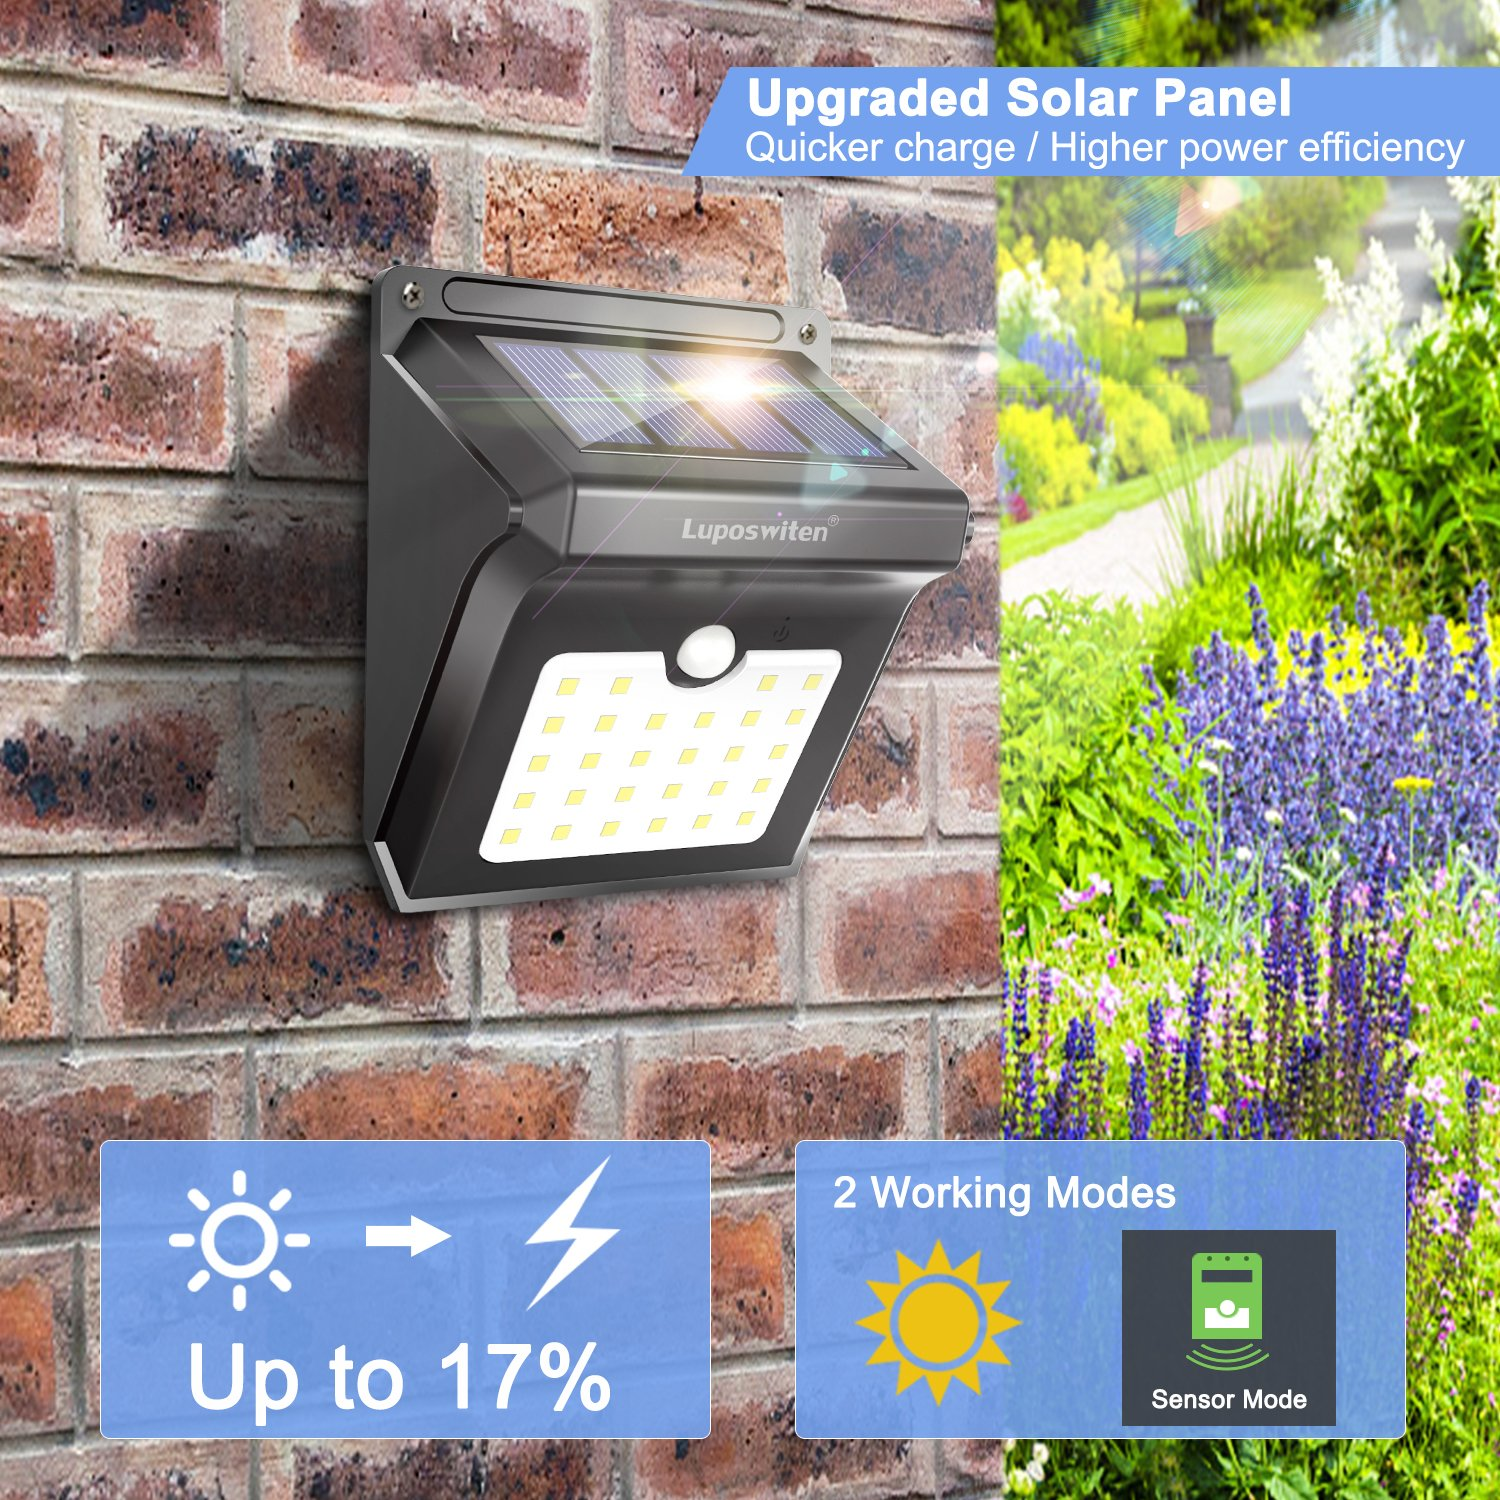 28 LEDs Solar Lights Outdoor, Motion Sensor Wireless Waterproof Security Wall Lights, Solar Light for Outdoor, Front Door, Back Yard, Garage, Porch by Luposwiten (4 Pack) by Luposwiten (Image #2)